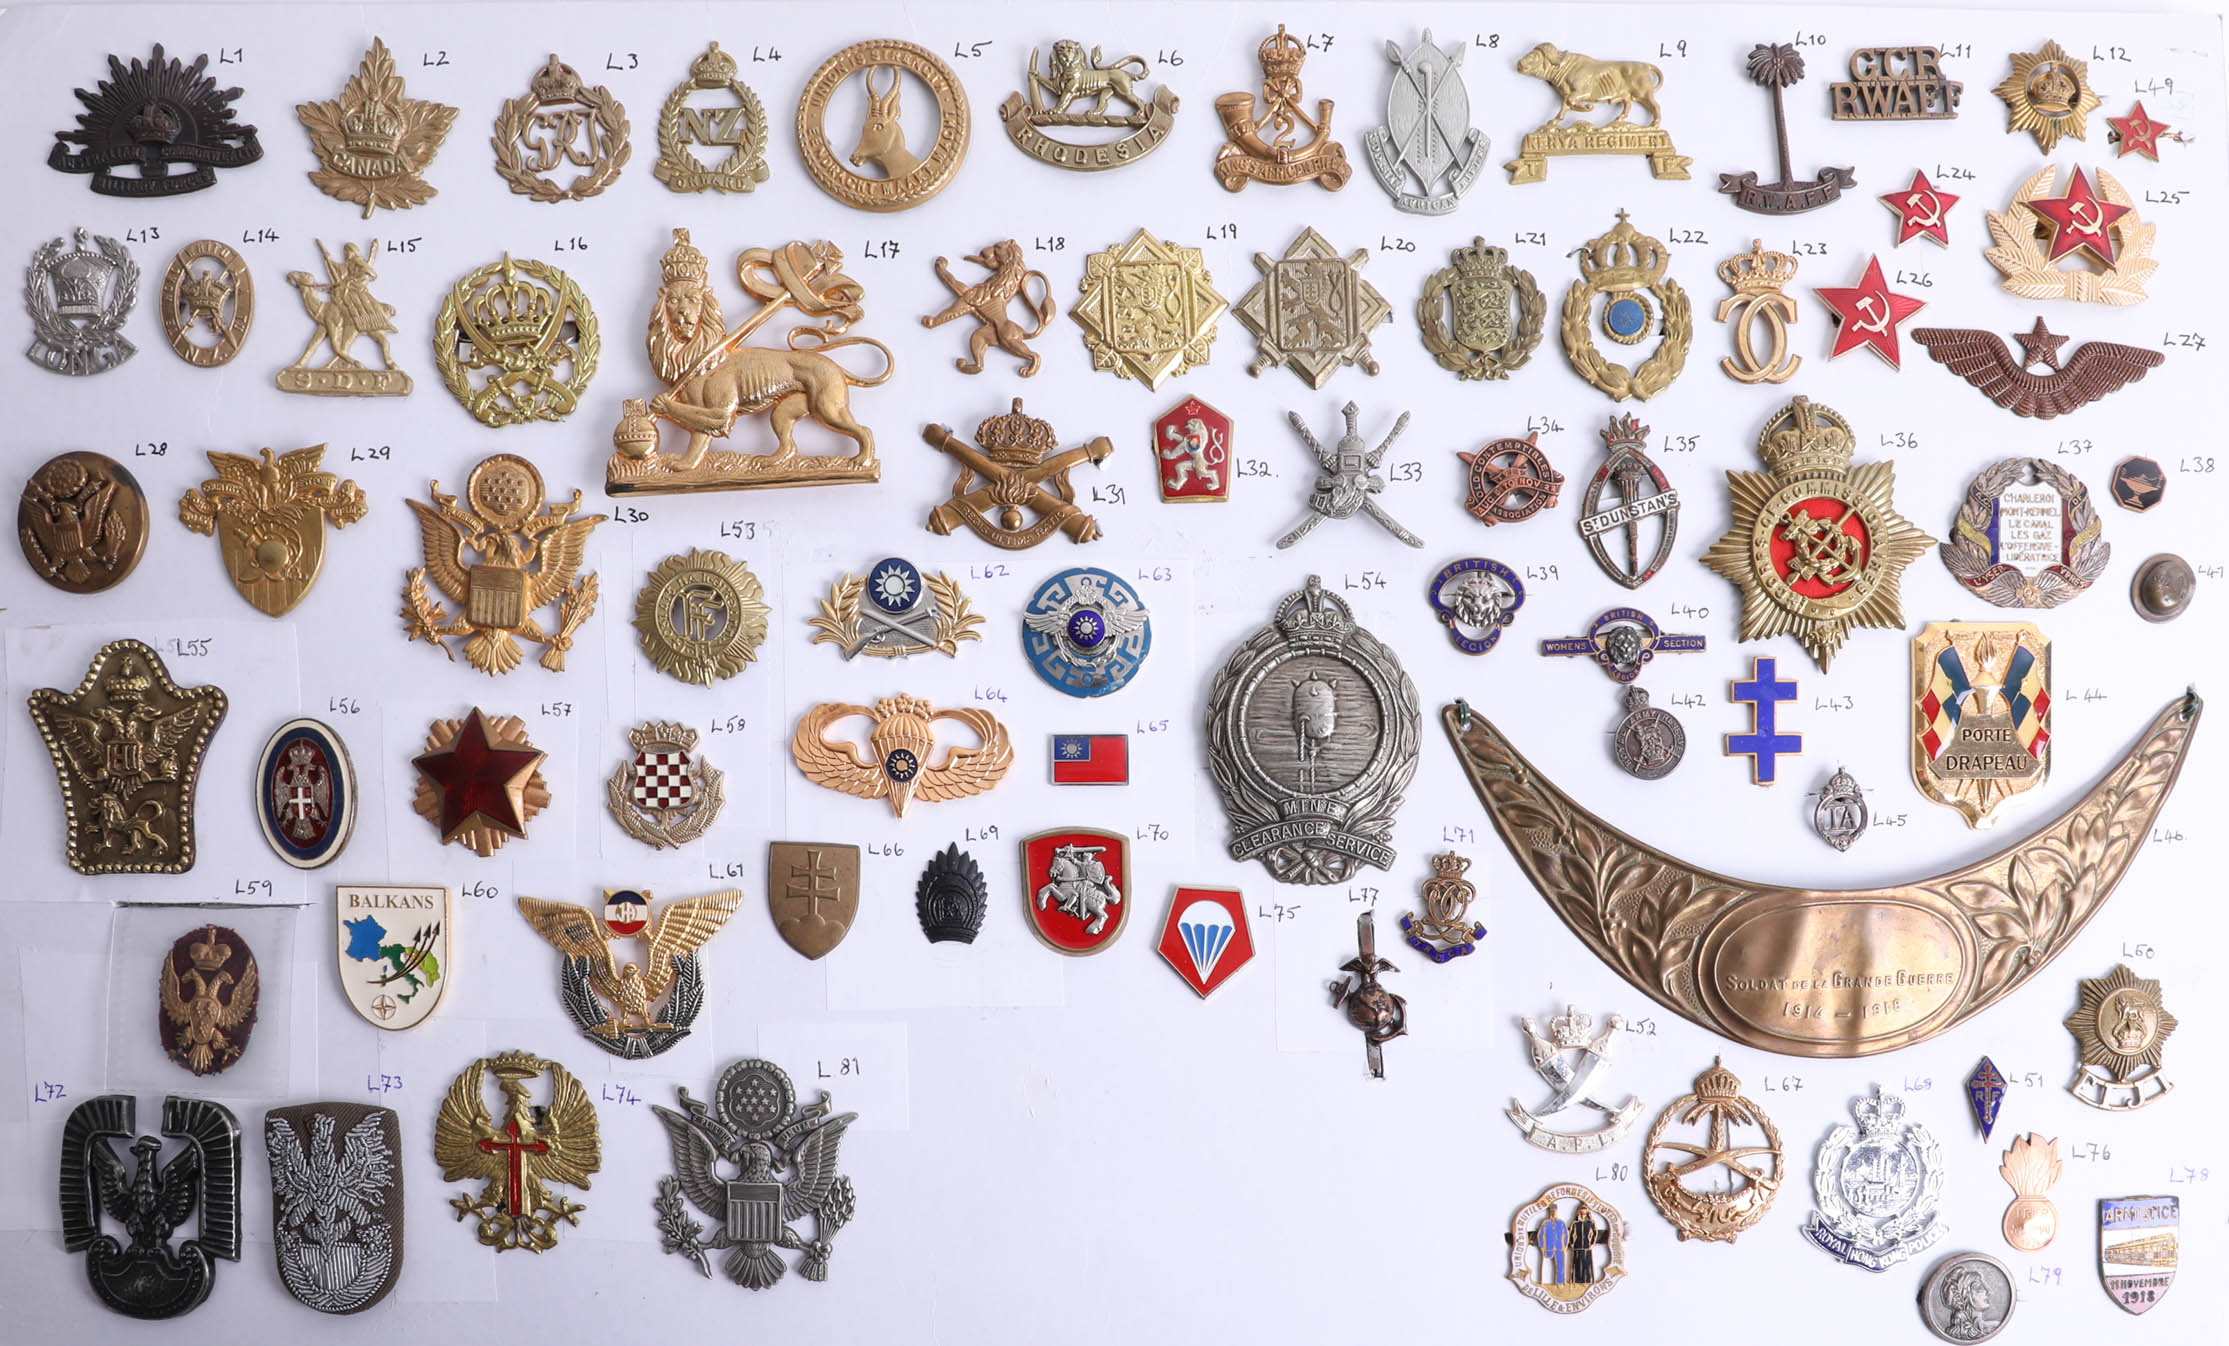 Lot 012 - A collection of approx. 75 military cap and other badges of foreign and overseas forces including